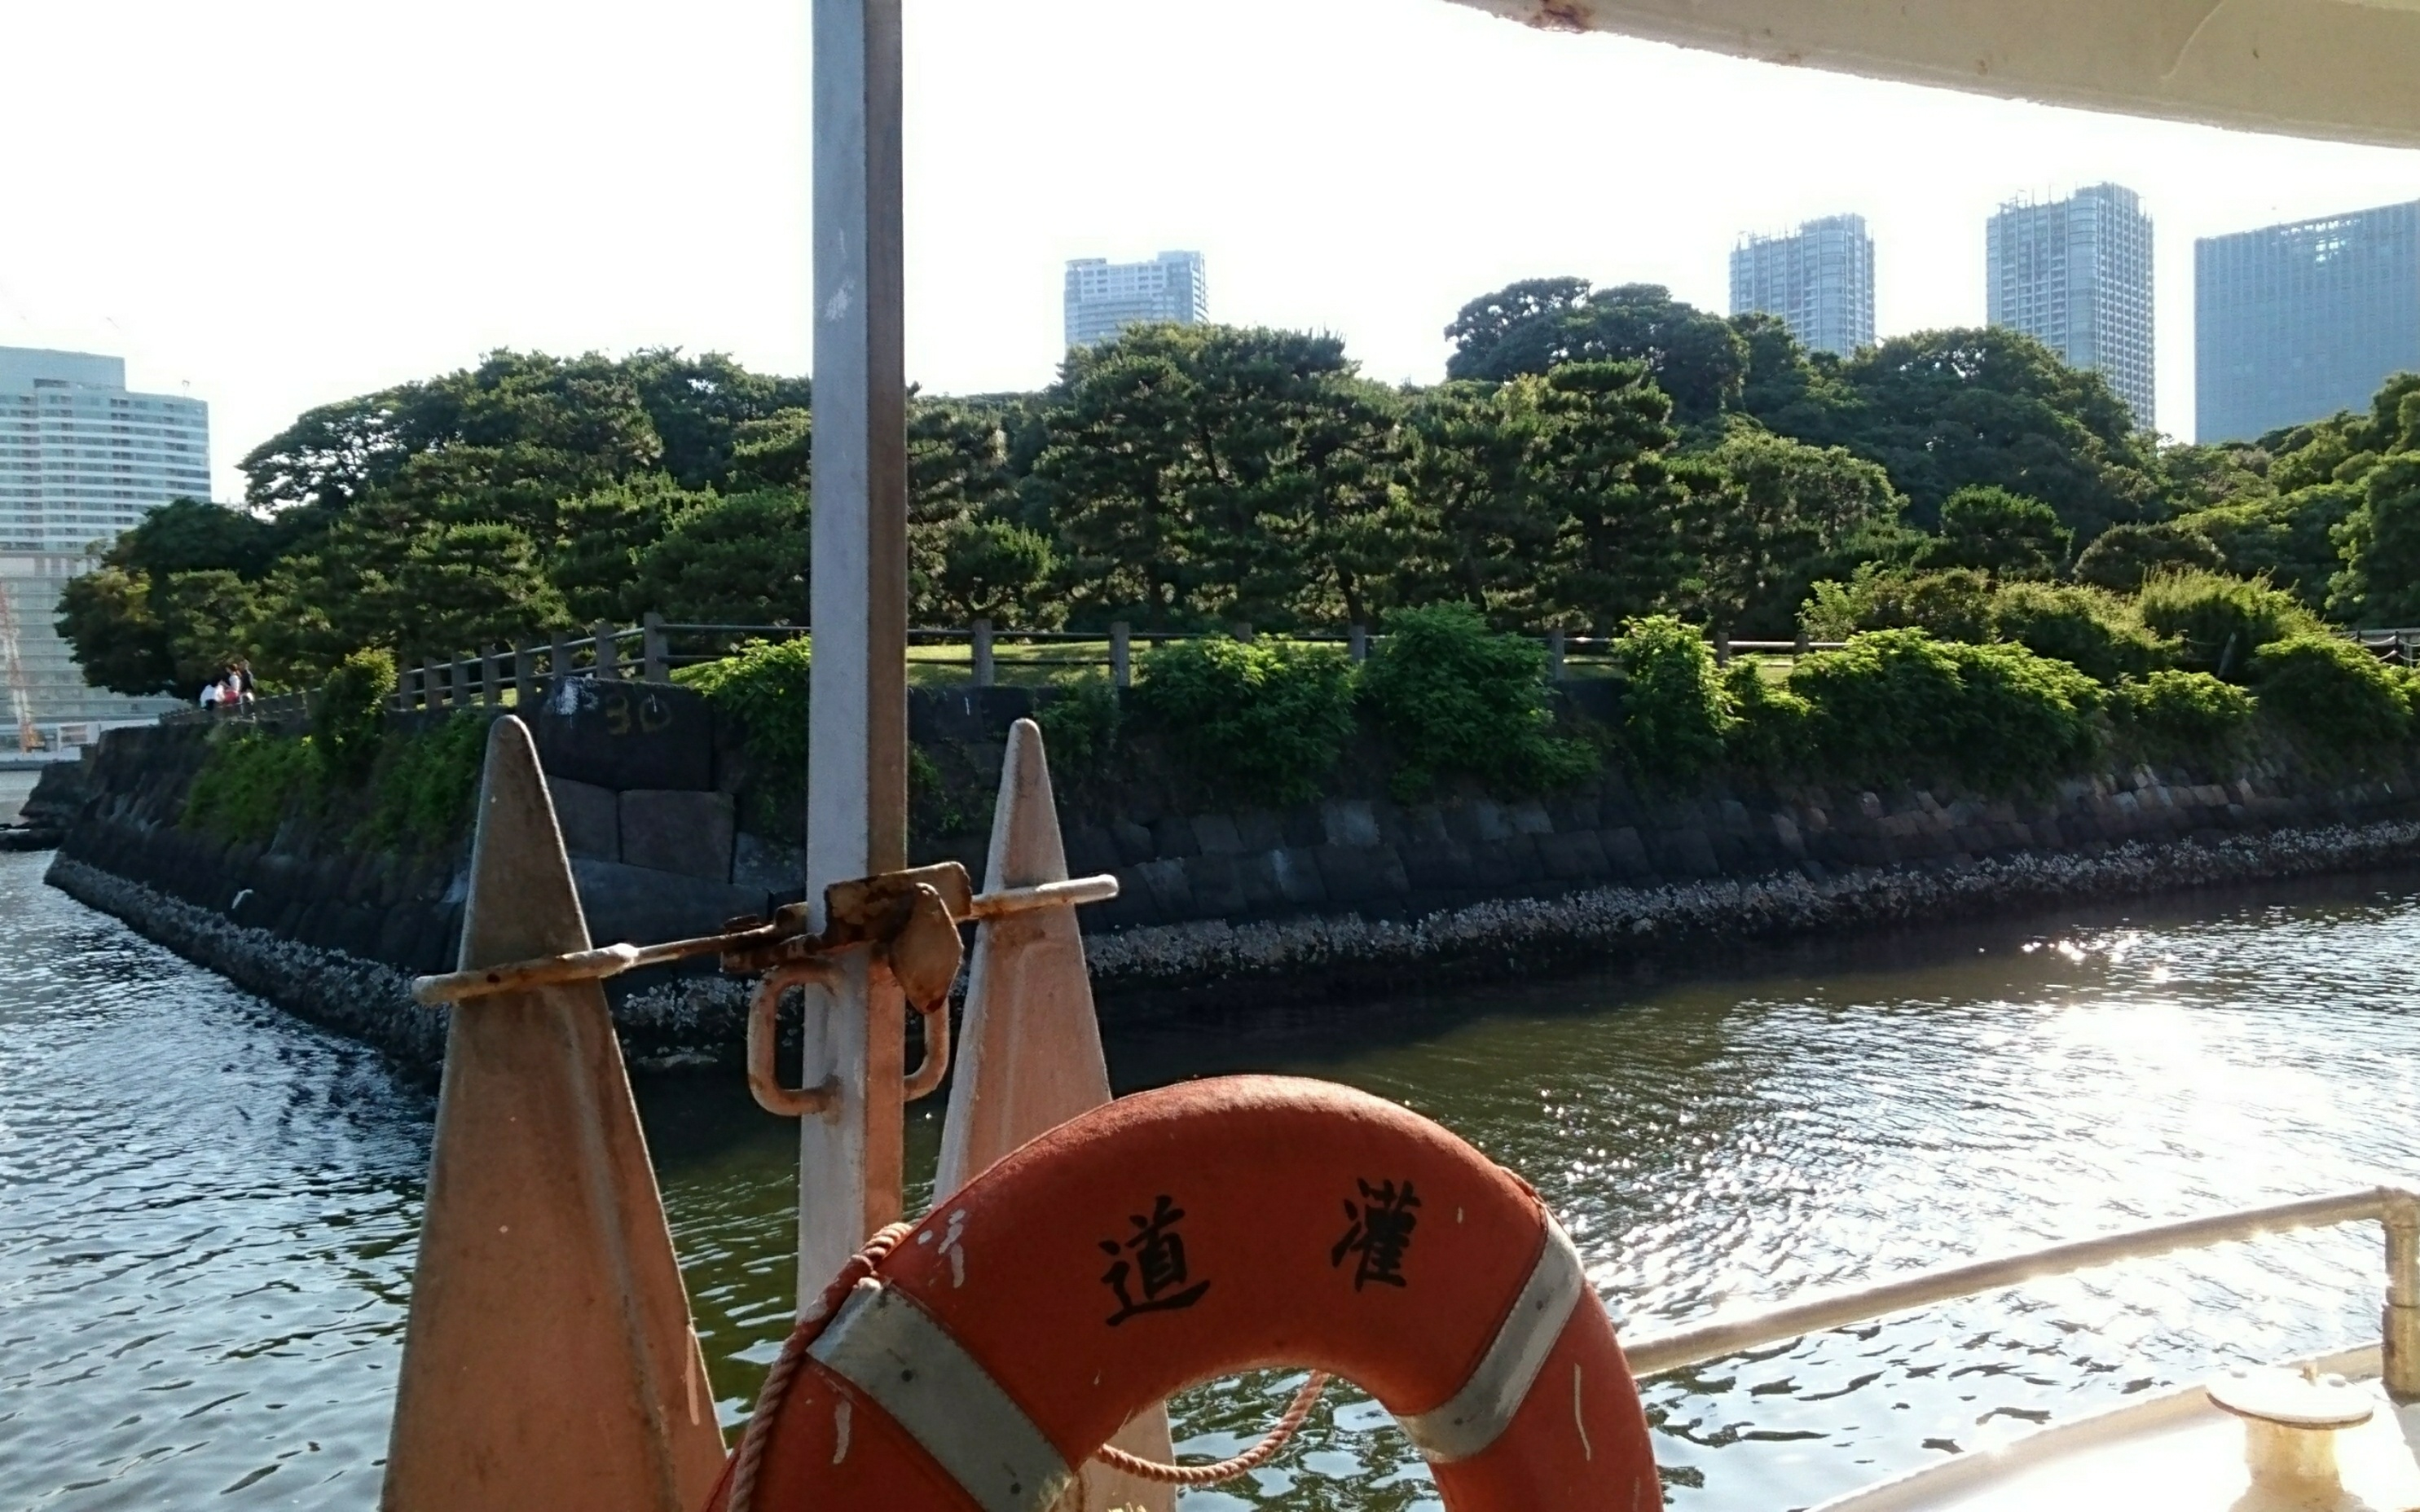 Take the waterbus at the pier of the garden to Asakusa!!(About 1 hour boat cruise on the Sumida River)